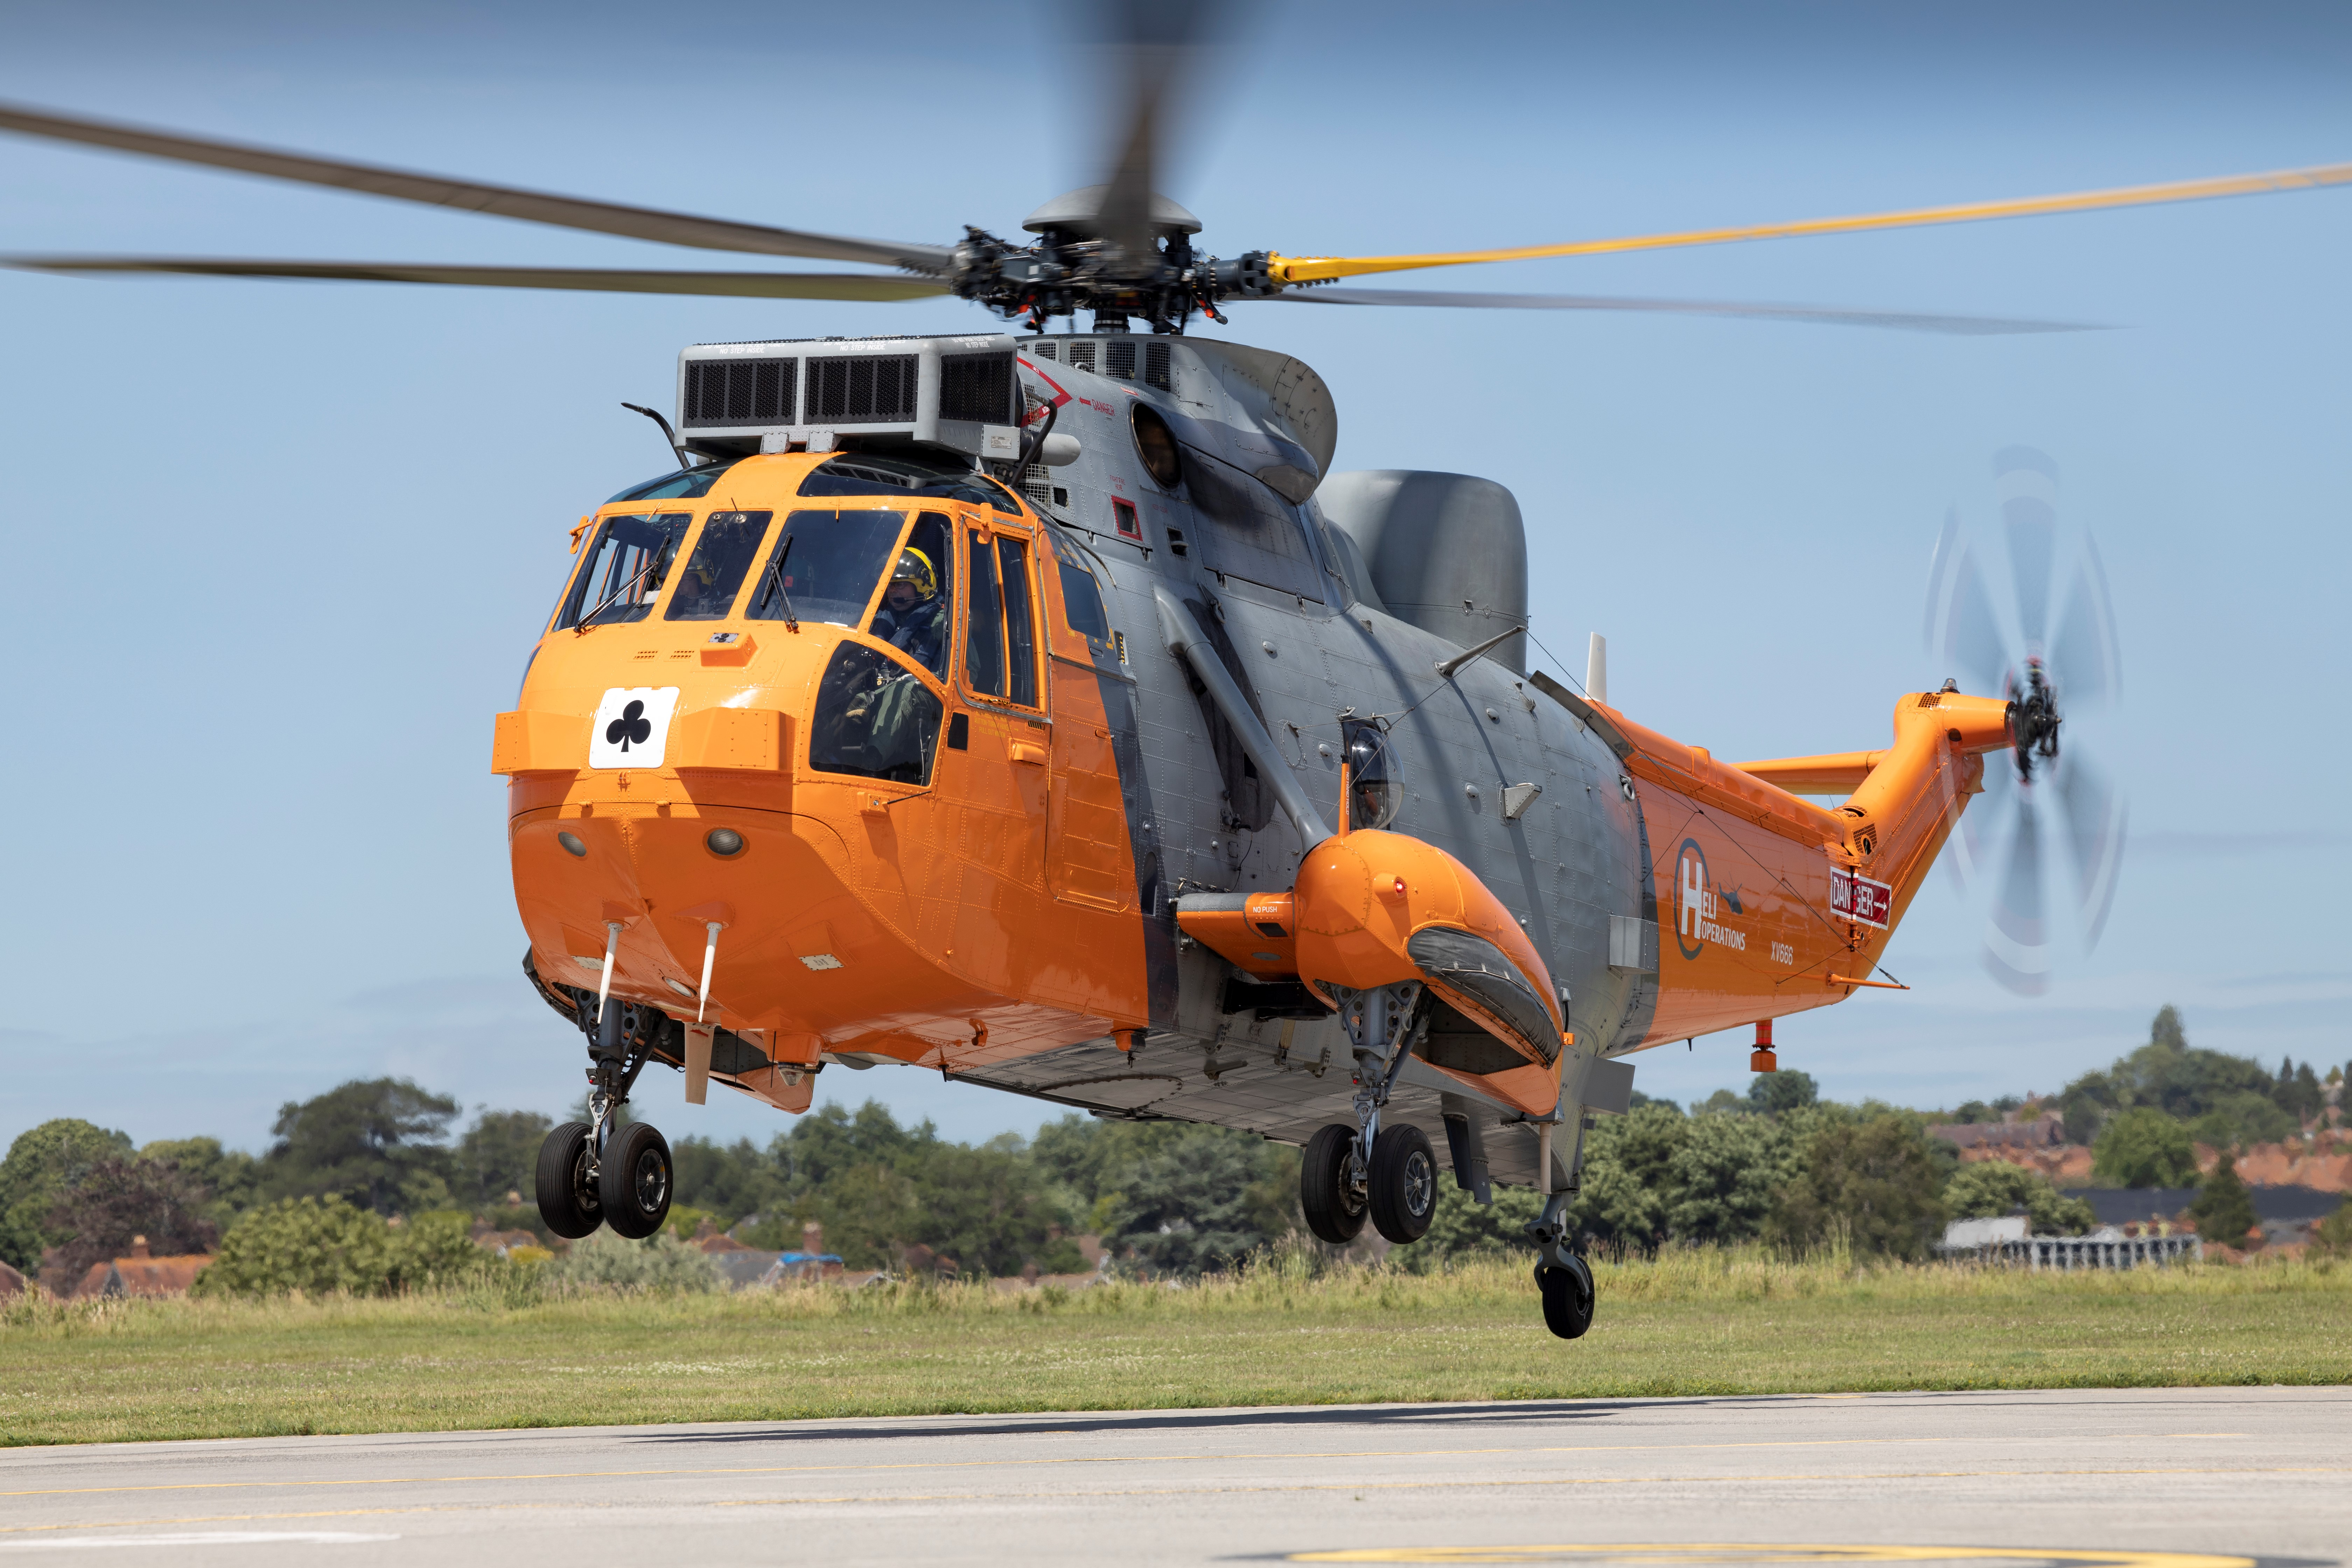 Sea King visits Yeovil – 50th anniversary since first flight